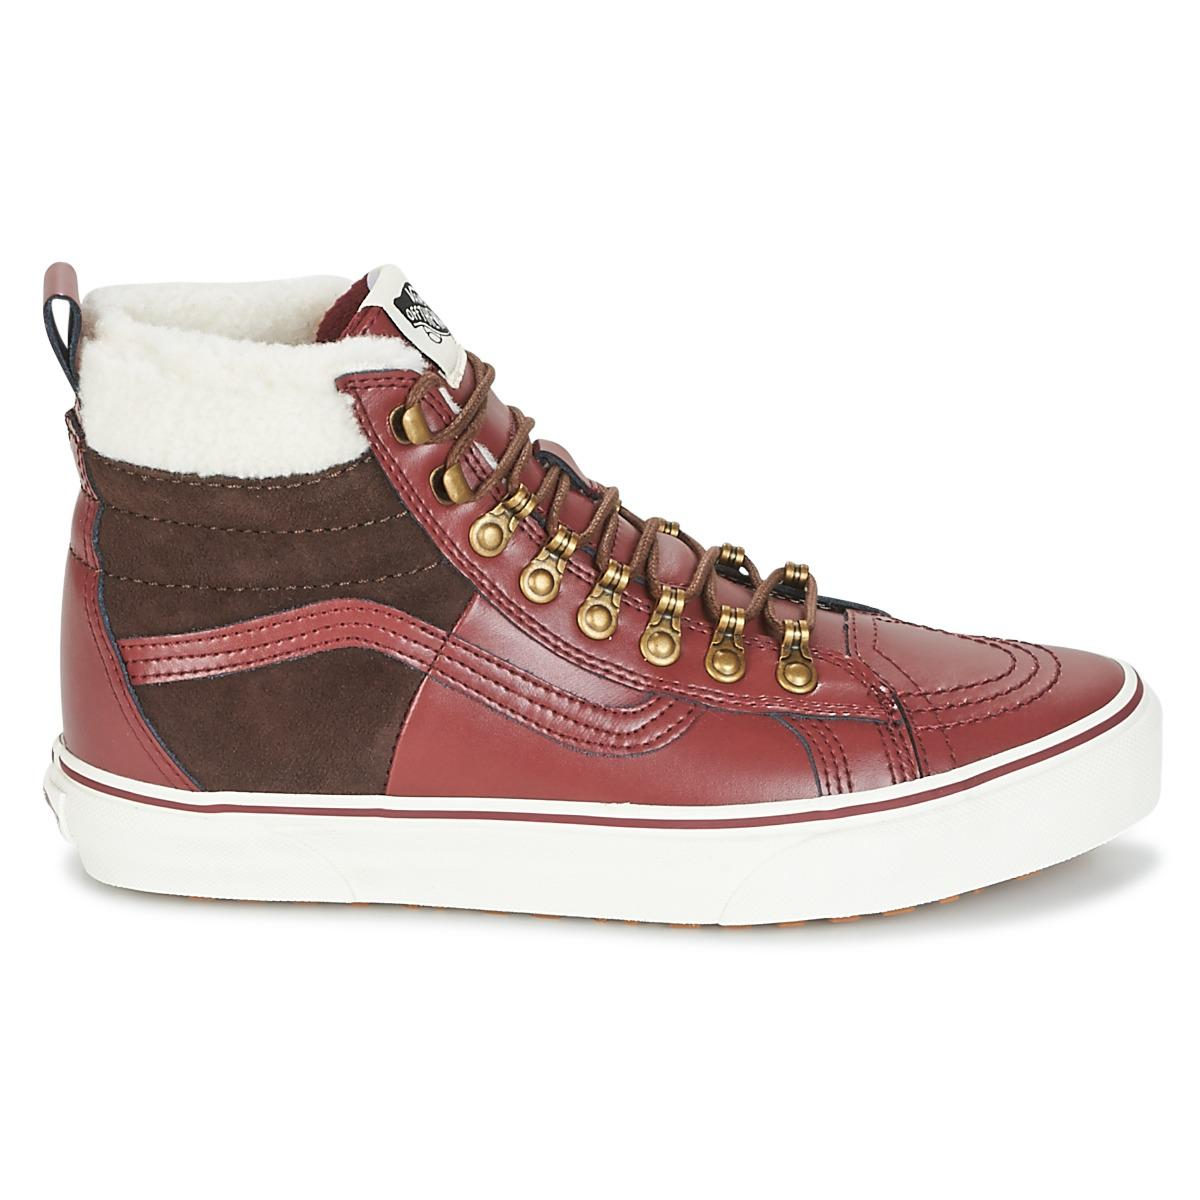 dfefa4fb7c Vans - Sk8-hi 46 Mte Dx Women s Shoes (high-top Trainers). View fullscreen